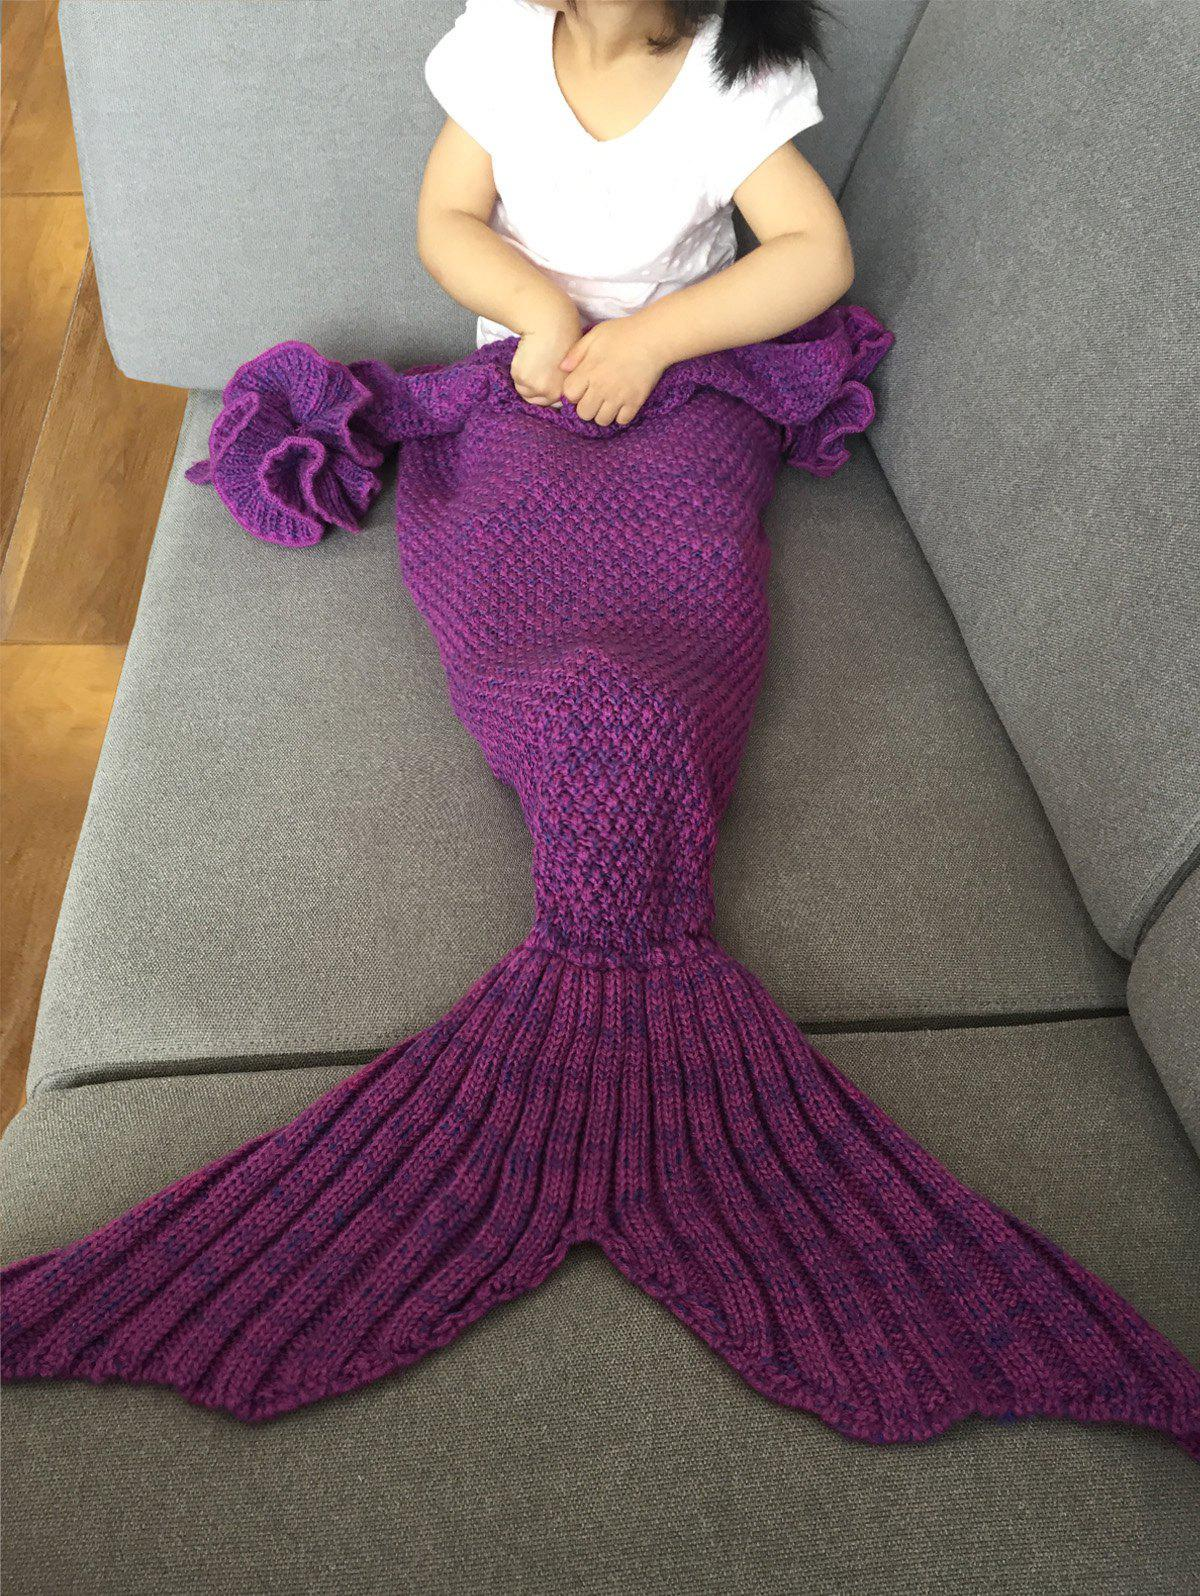 30cce79d9ac Fashion Knitted Falbala Shape Mermaid Tail Design Blankets For Baby